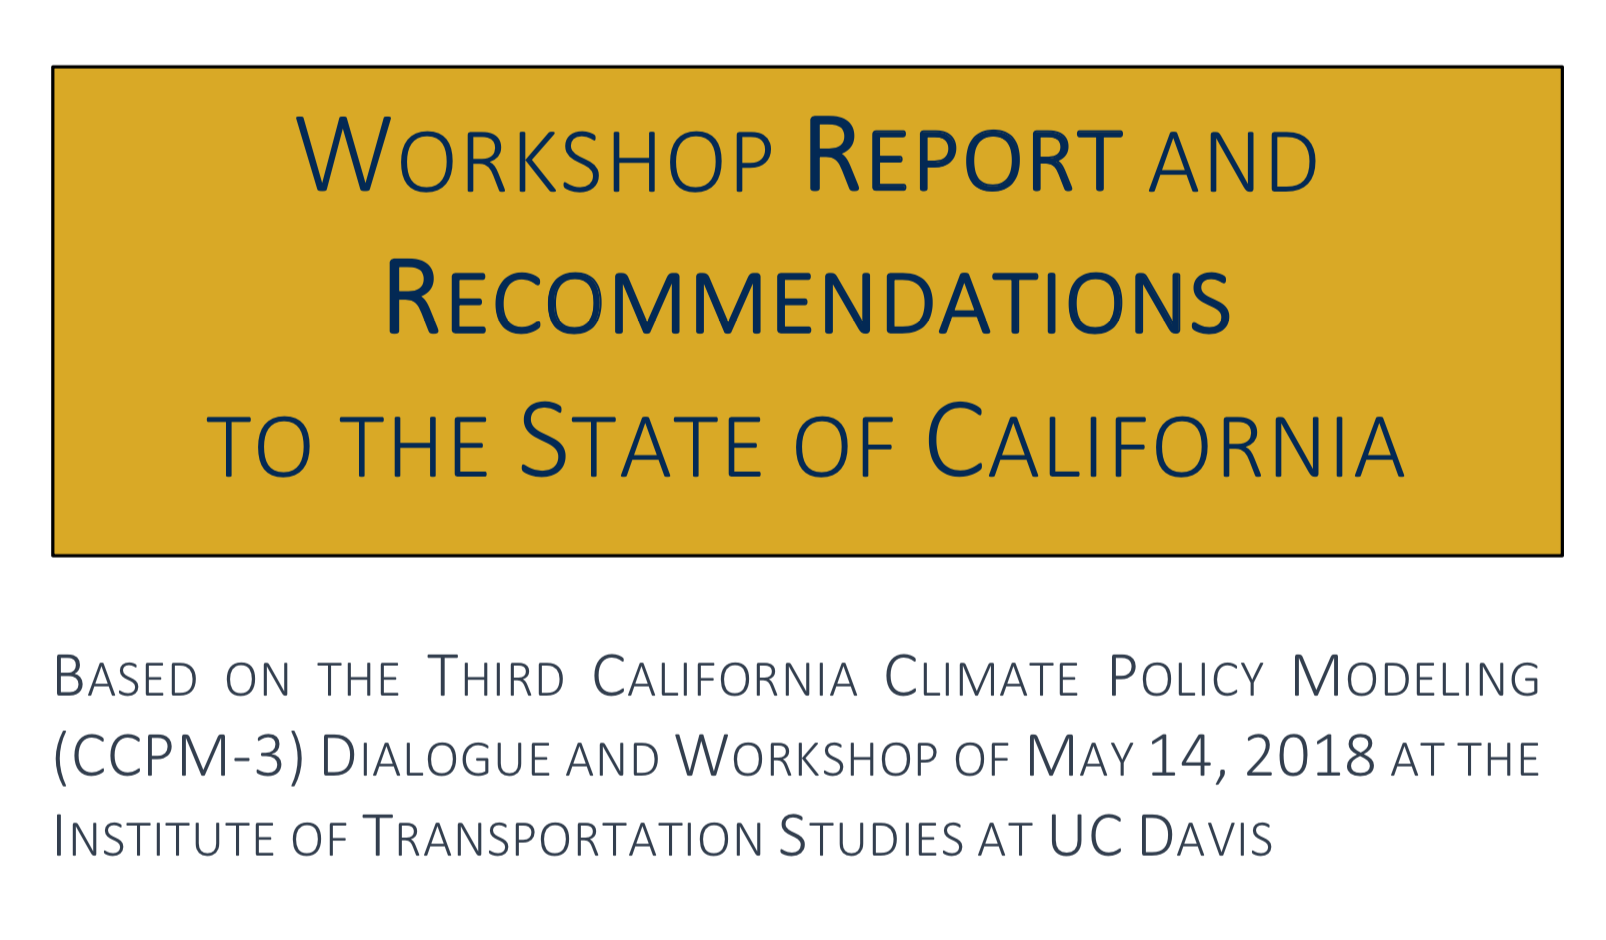 The CCPM3 Workshop Report and Recommendations for the State of California is available